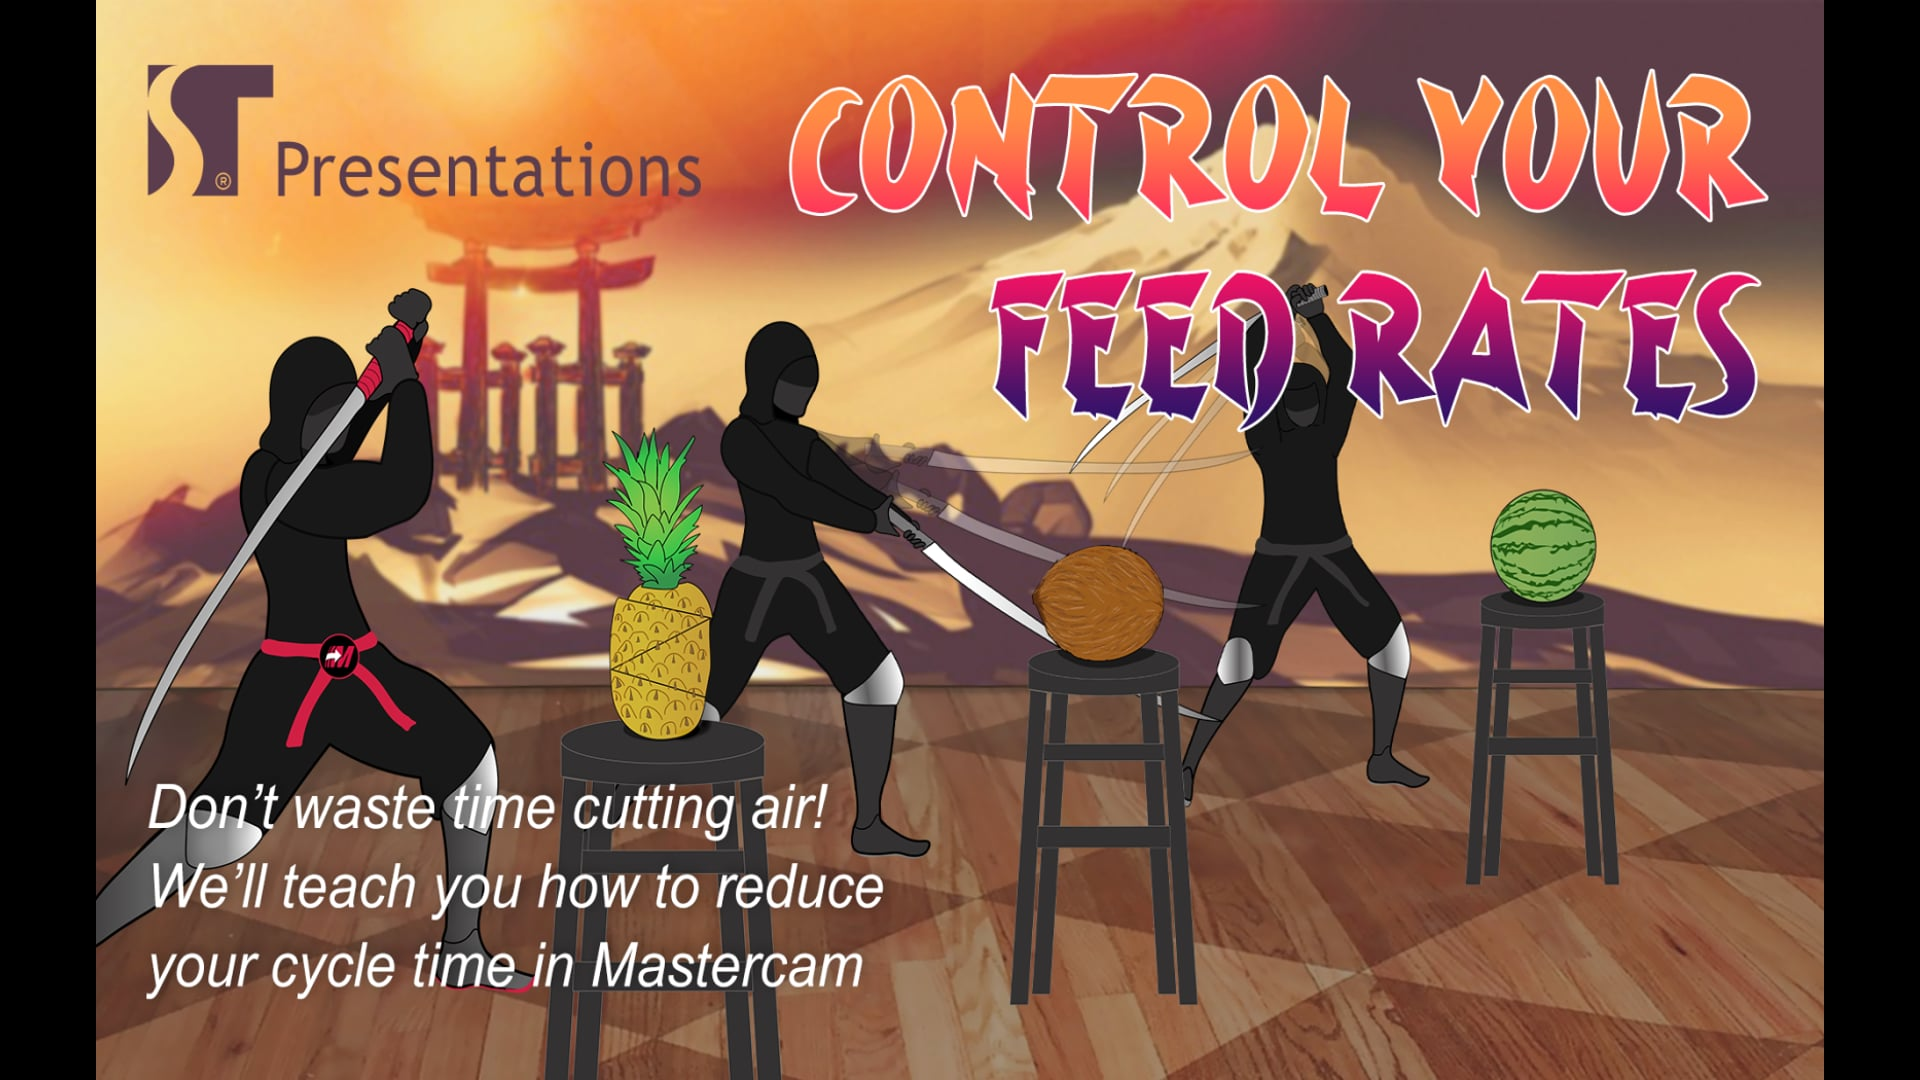 Control Your Feed Rates